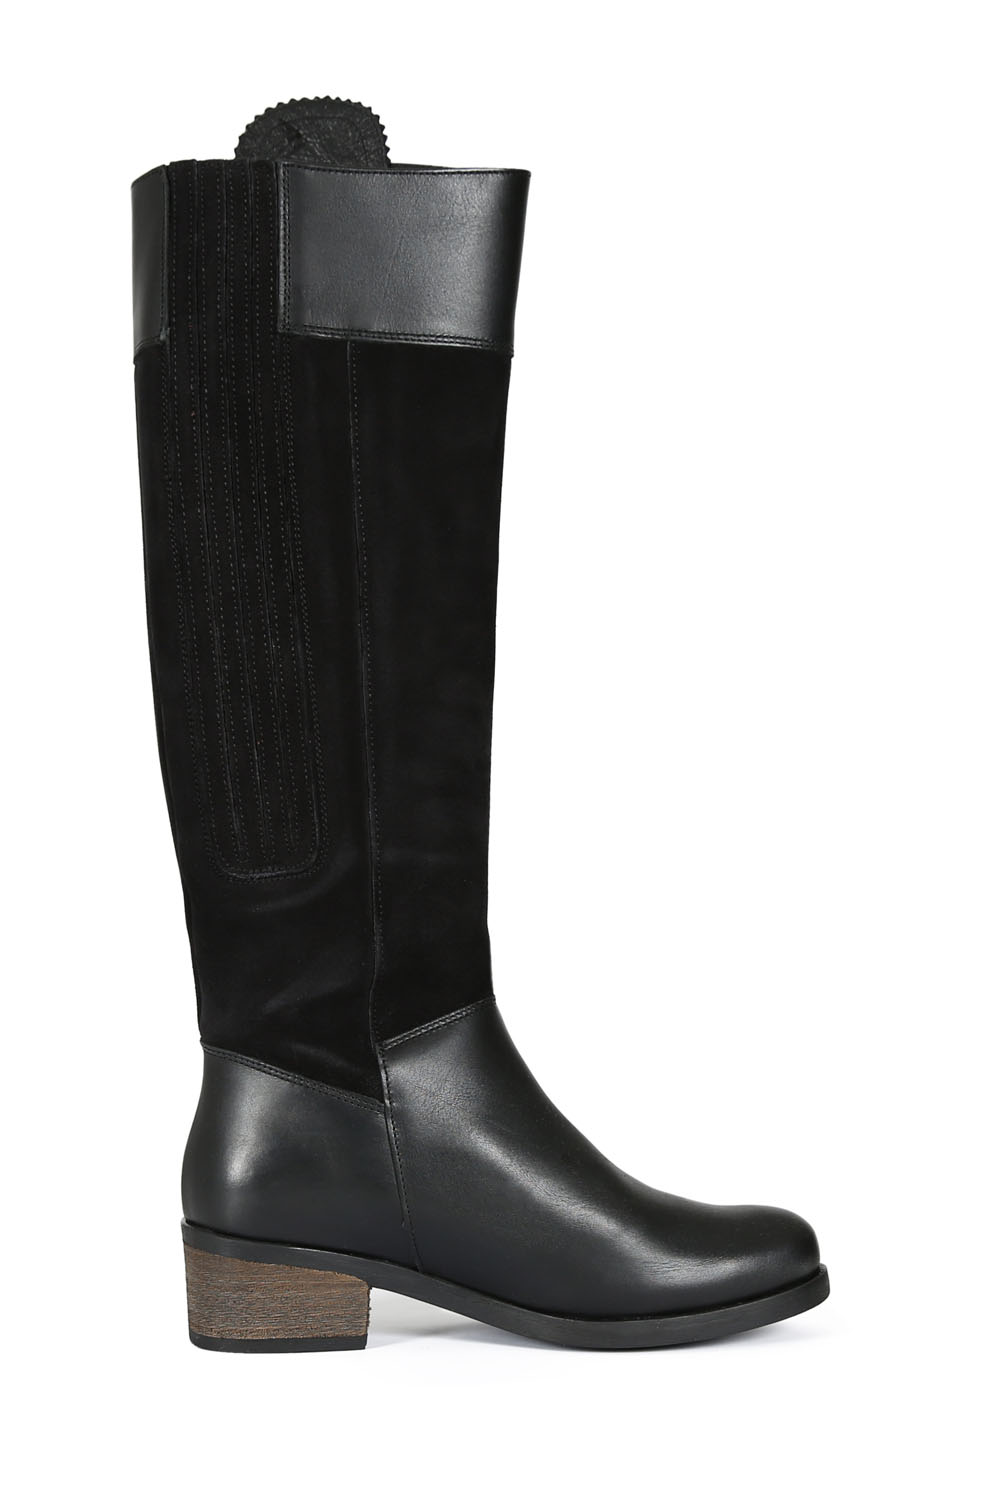 Mayfair Black Leather Boots